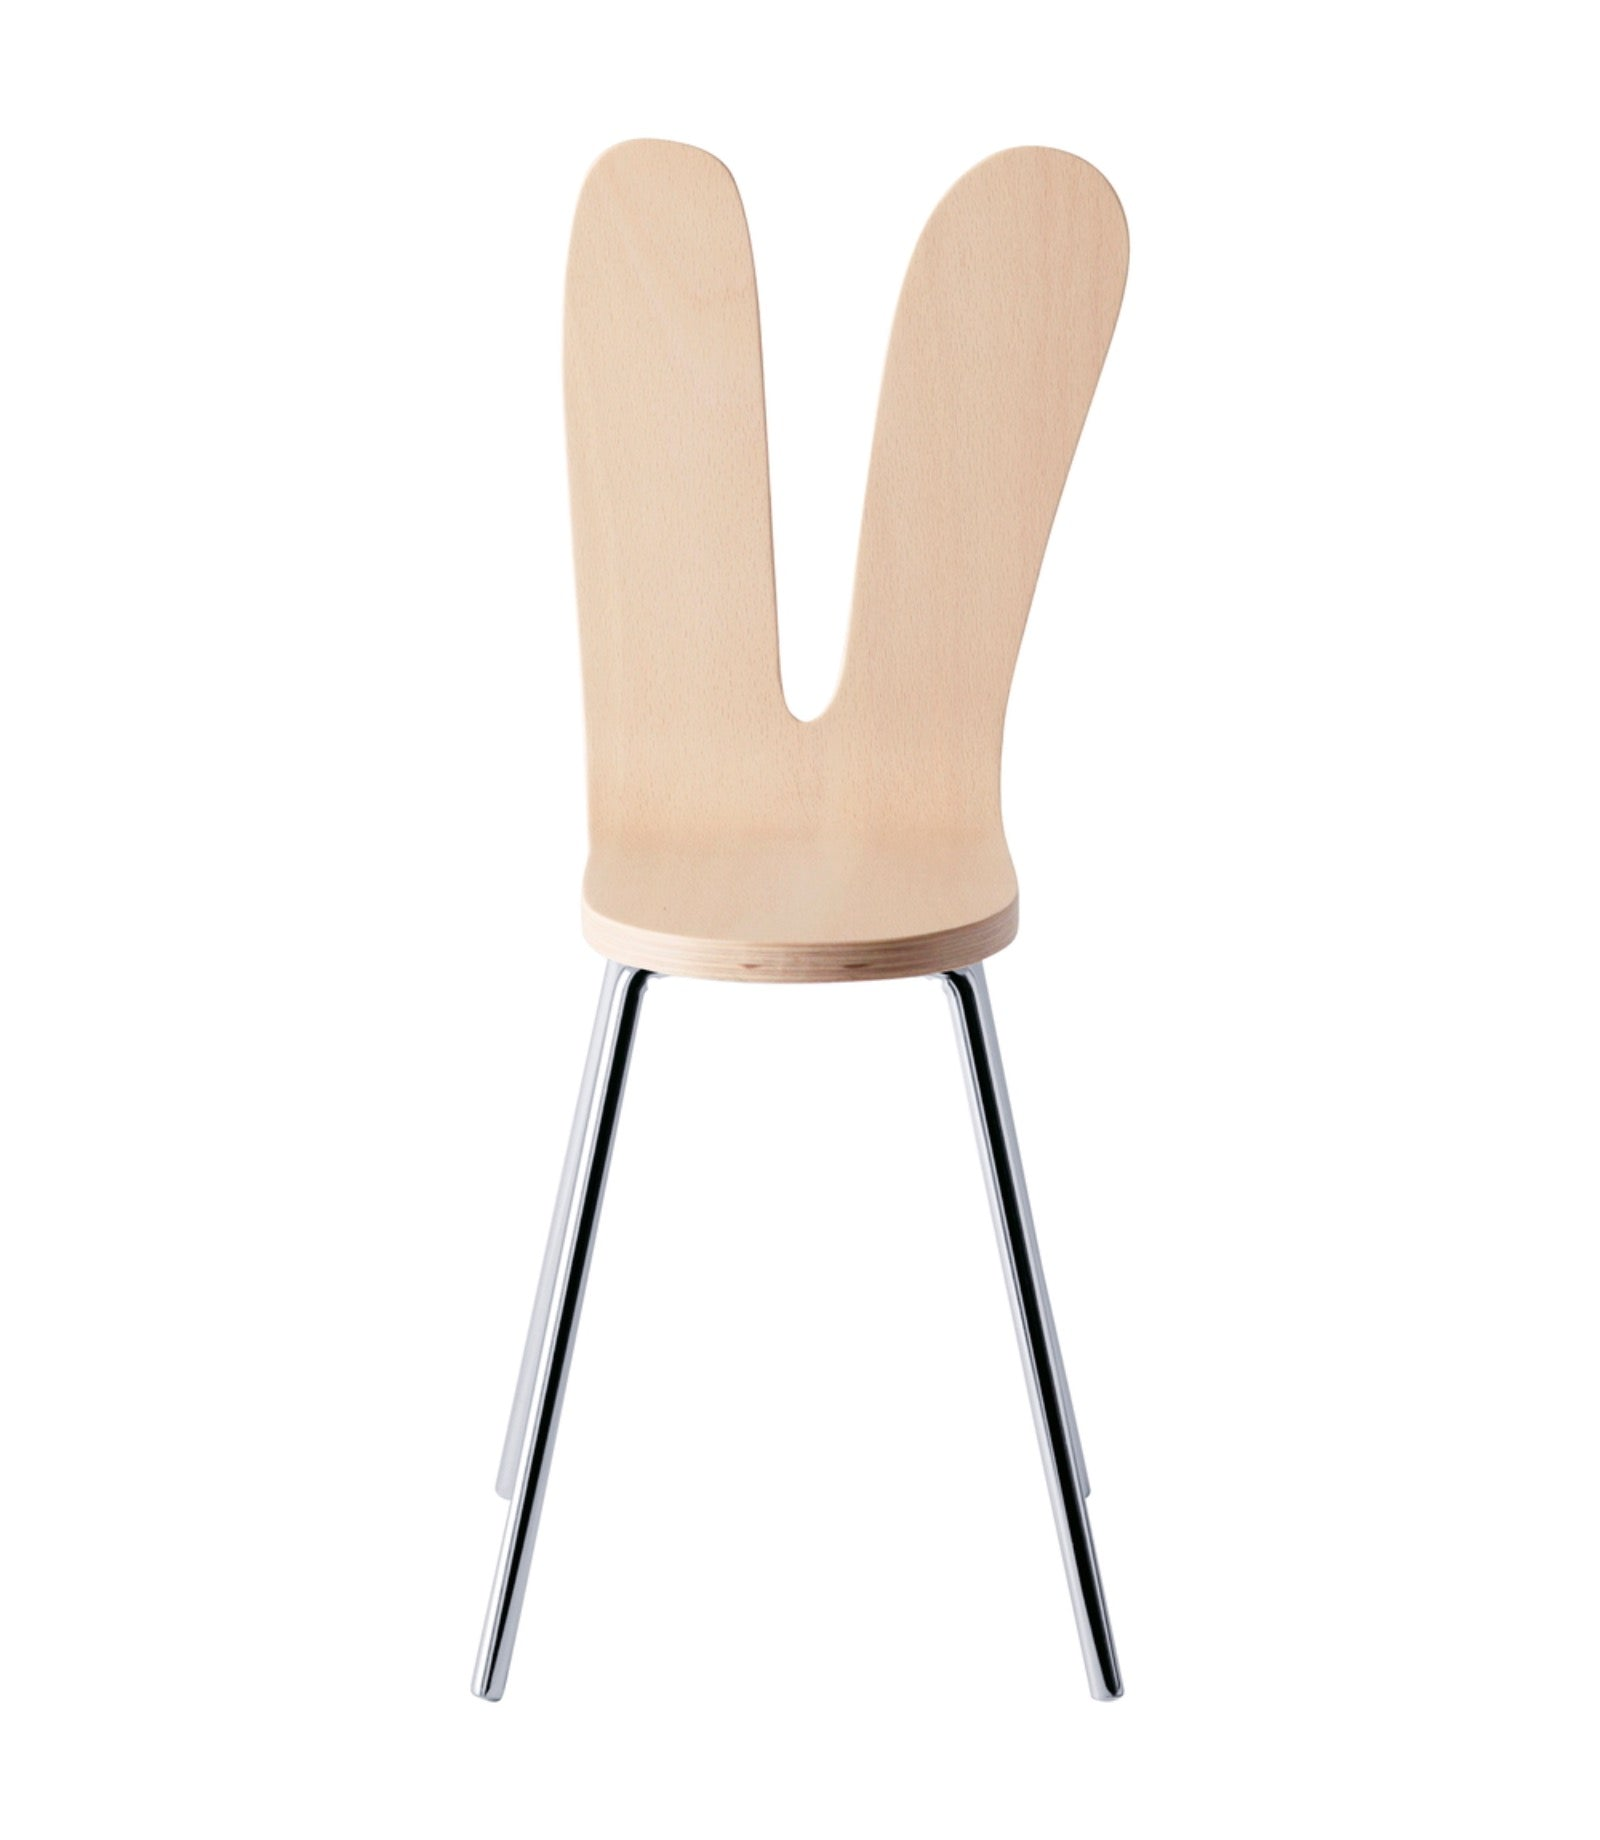 Nextmaruni Armless Chair Minimini